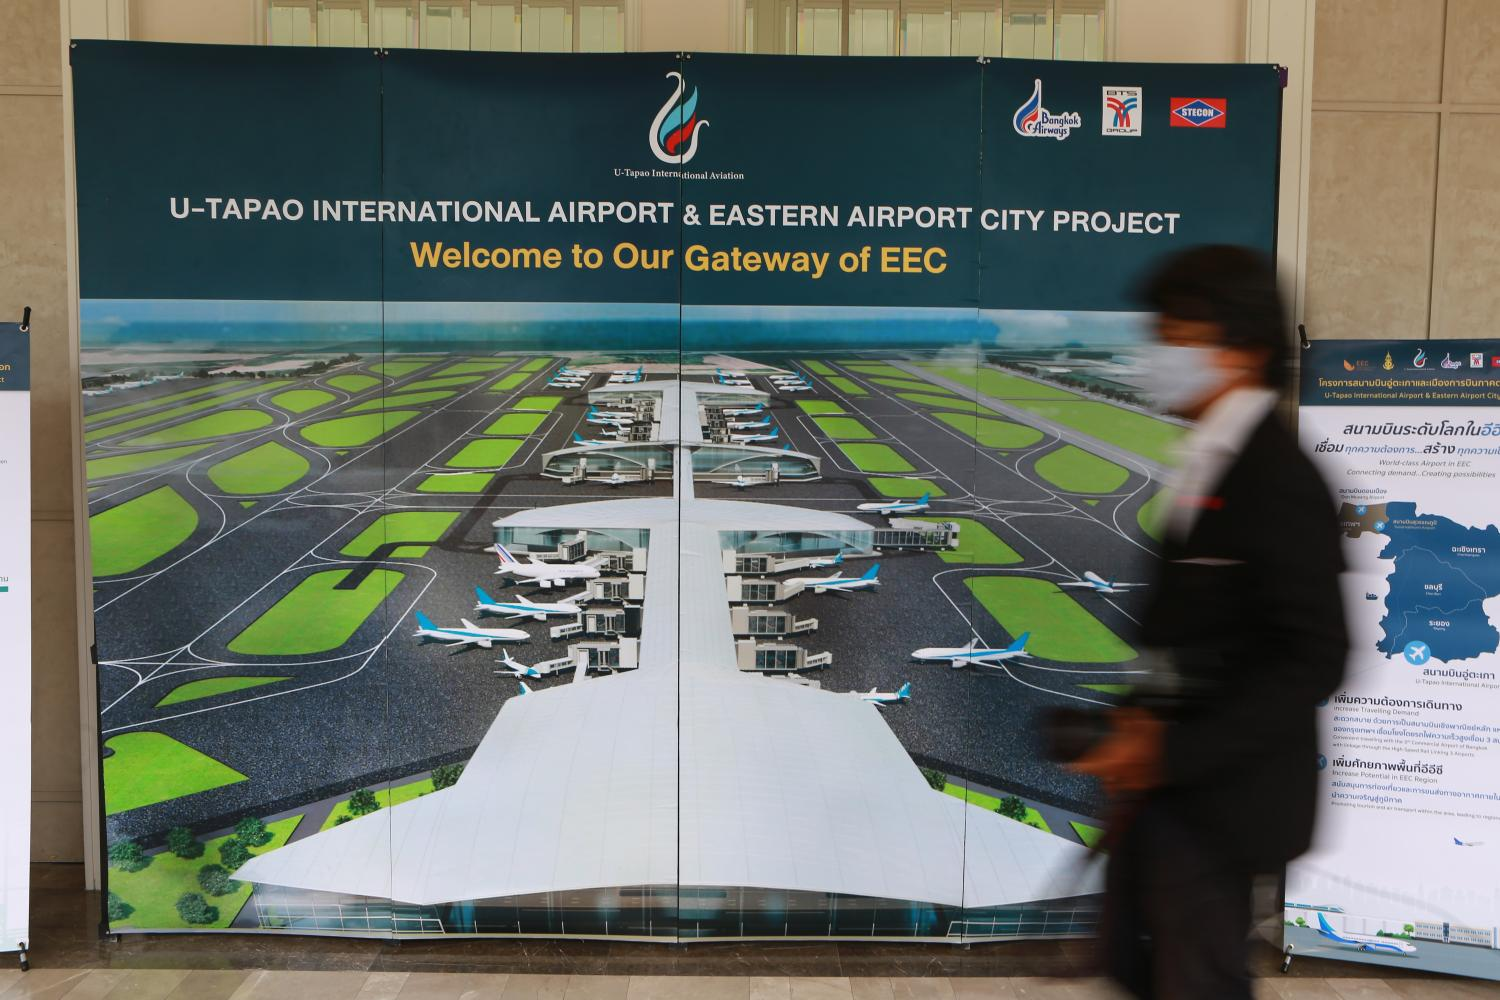 In Thailand, the EEC Aeropolis envisions the area surrounding U-tapao International Airport becoming a giant aerospace-focused city. Photo: Somchai Poomlard